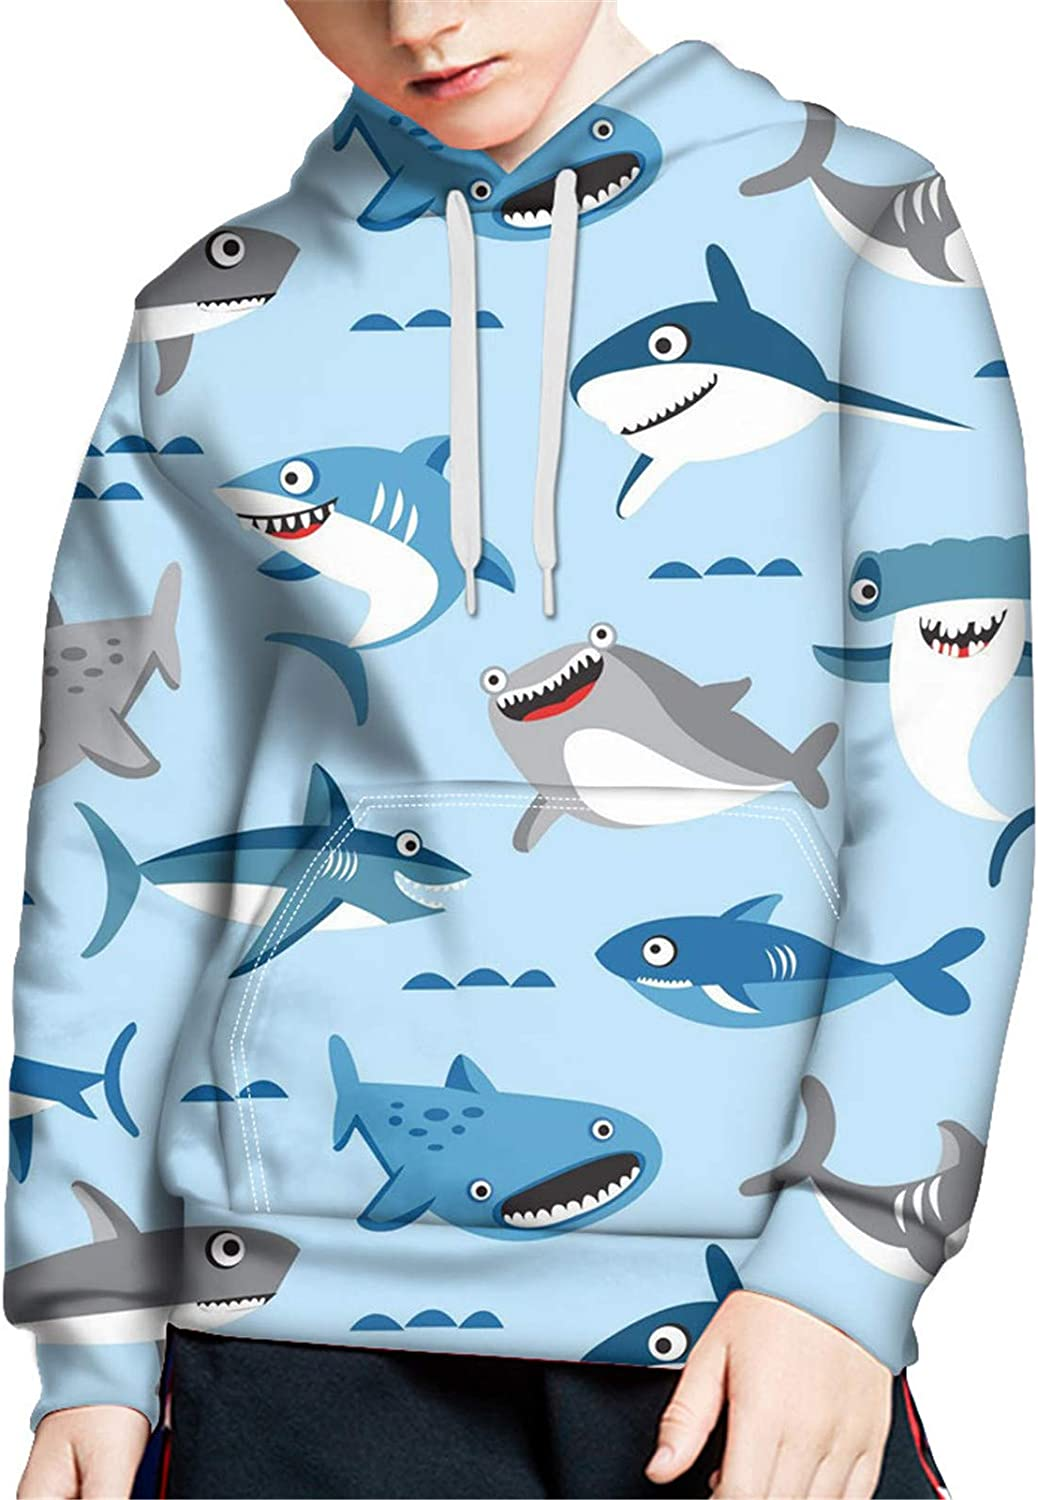 ZFRXIGN Kids Girls Hoodies and Sweaters Shark Print Pullover Tops 8-10 Years Sweatshirt Tops with Drawstring Hooded Outfits Lightweight Tops Medium, Light Blue